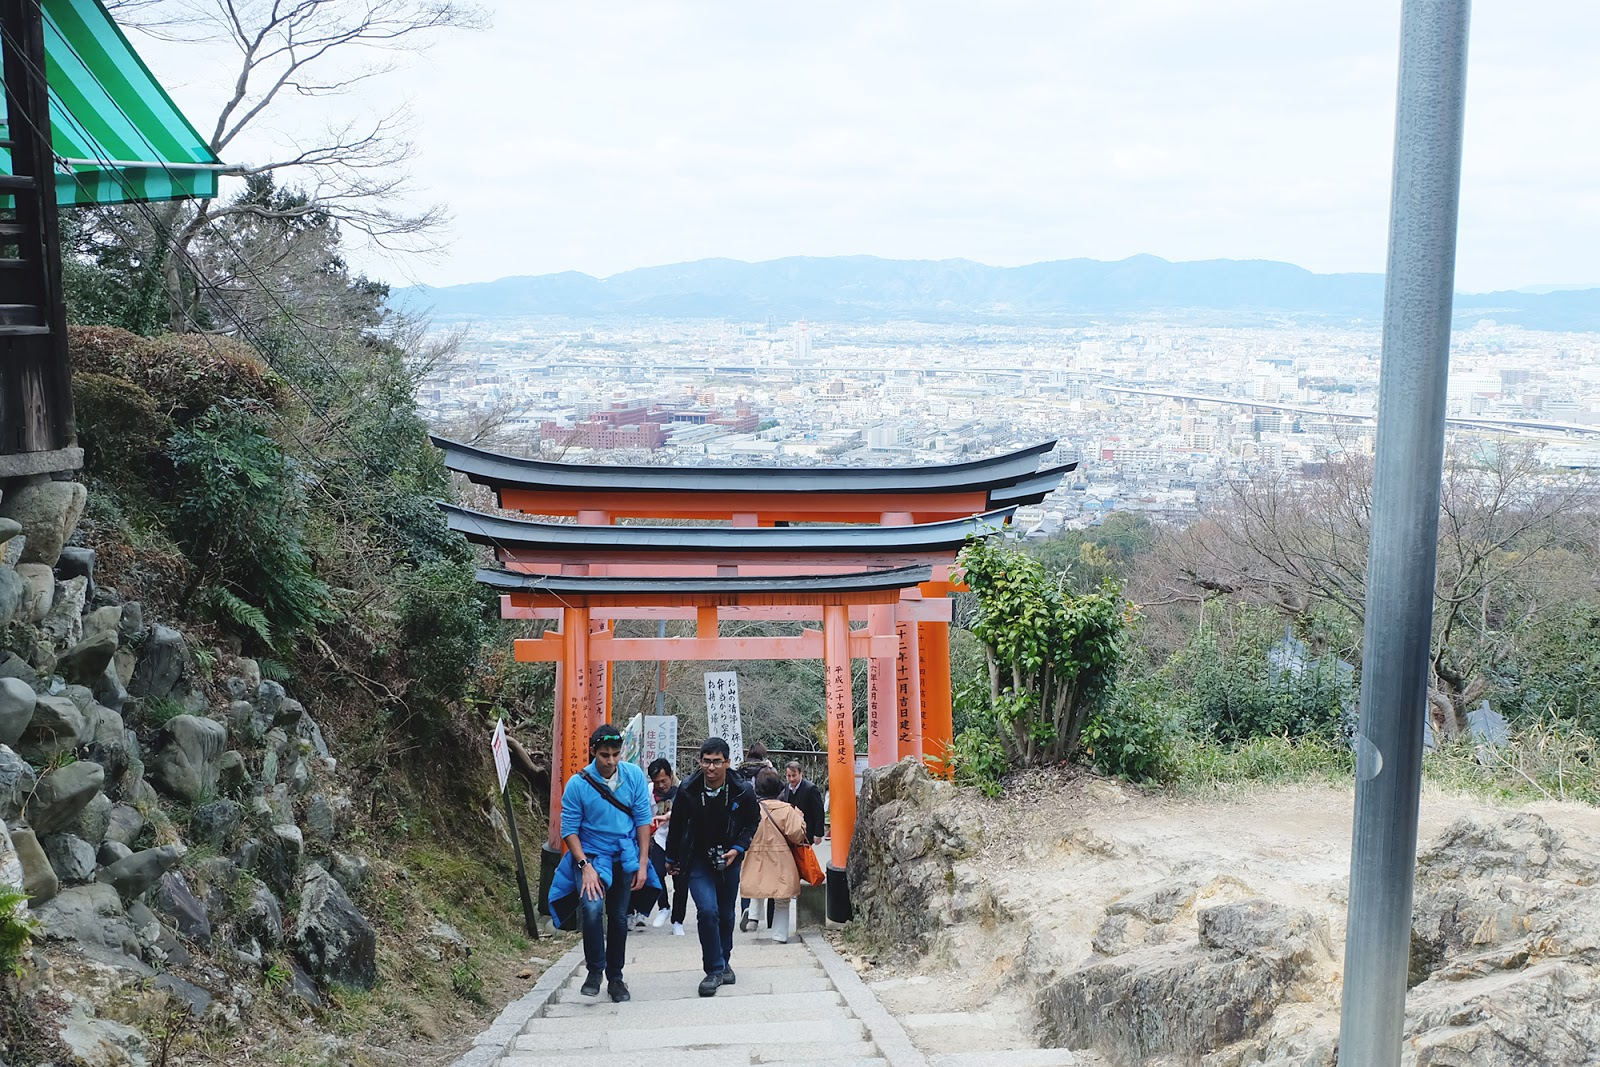 Kyoto View From Point 7 Fushimi Inari | www.bigdreamerblog.com